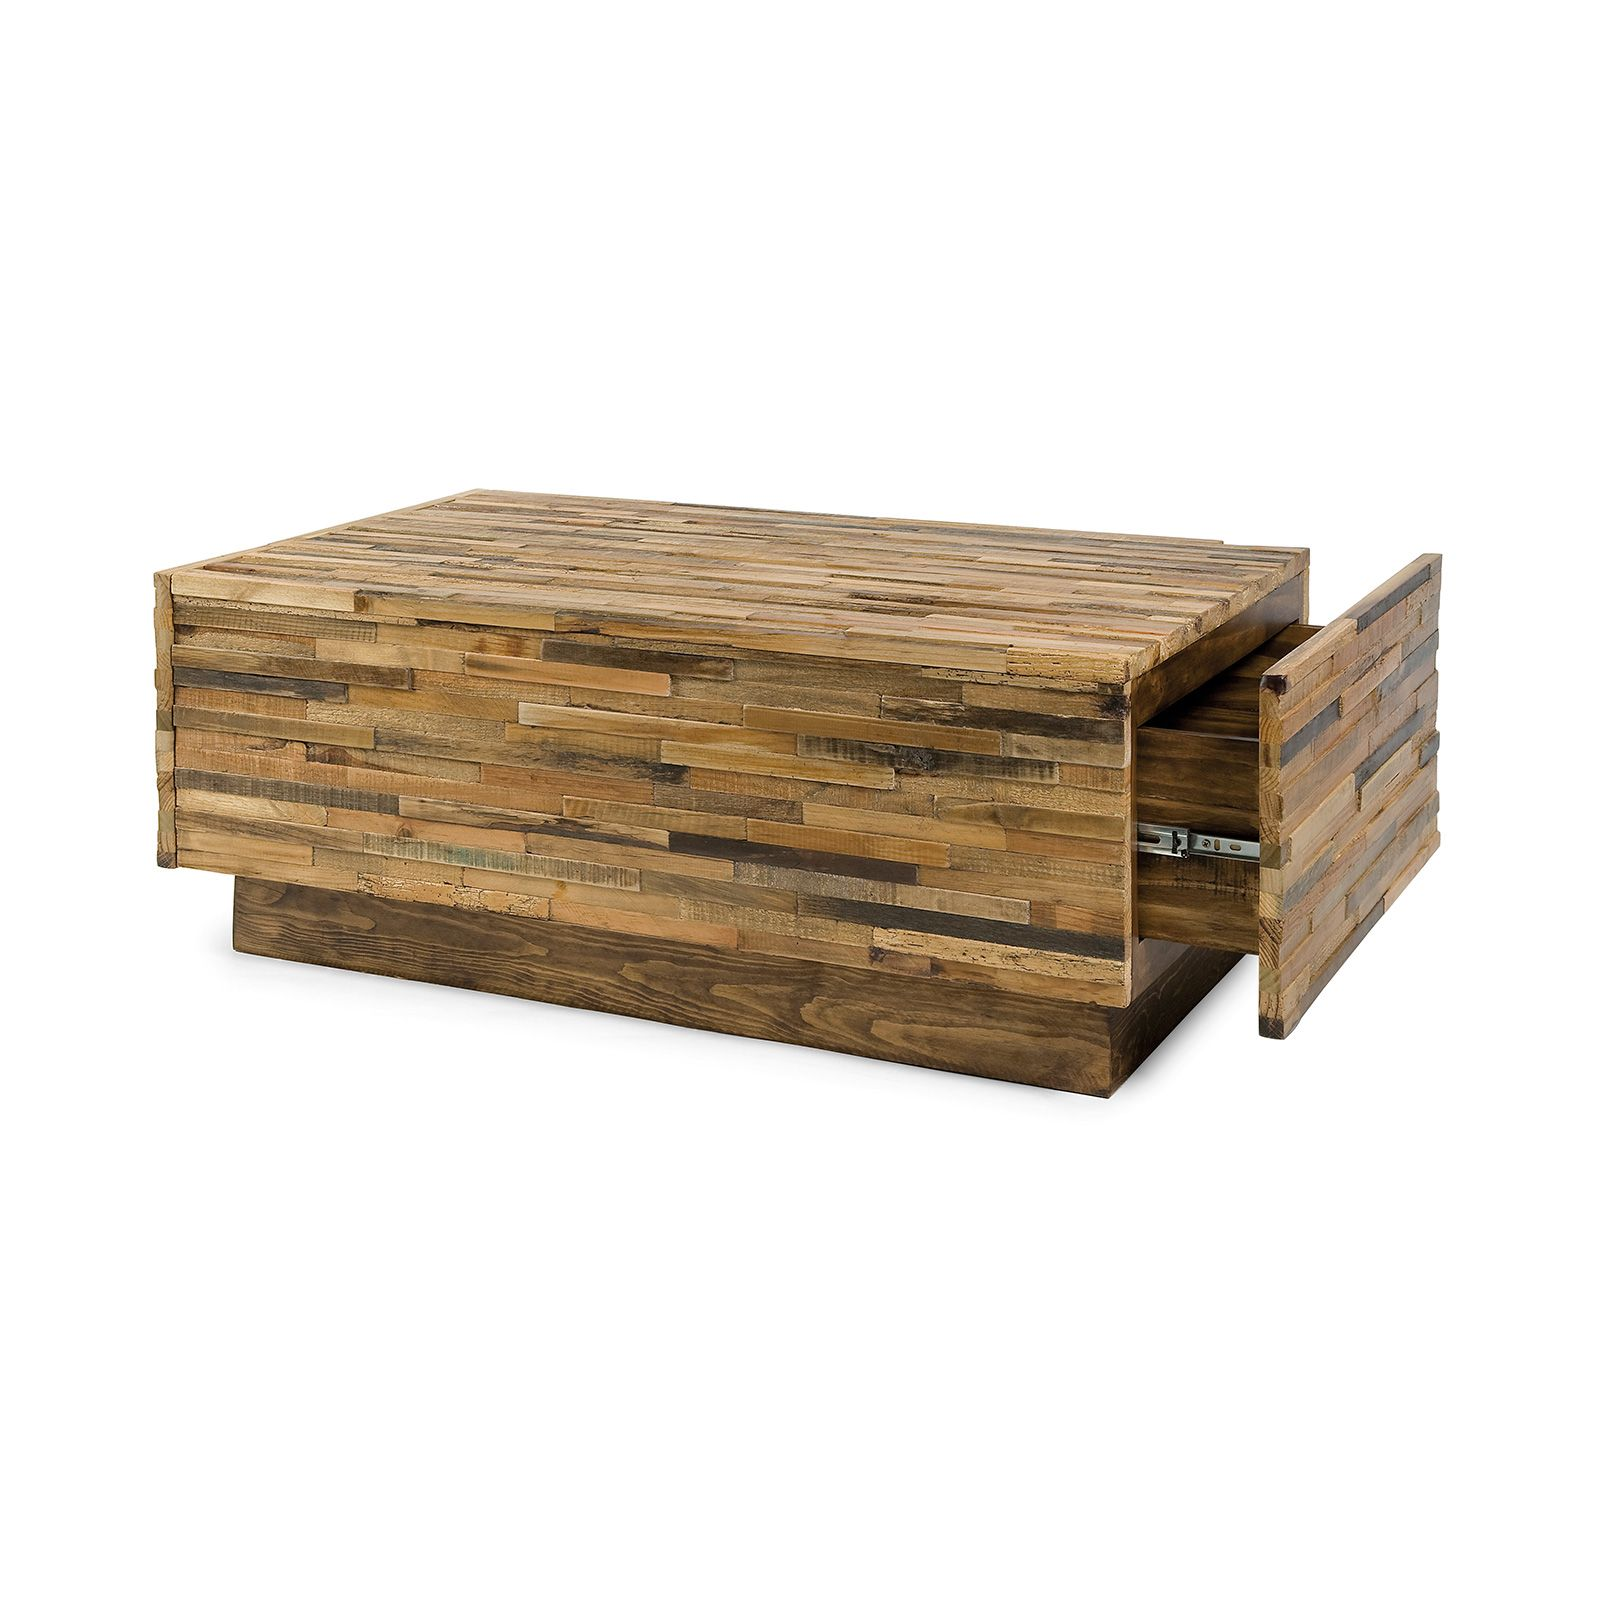 Reclaimed Wood Coffee Table With Sand Tones And Varied Grains Two Concealed Drawers Lend The Piece Functionality Without Taking Away From Its